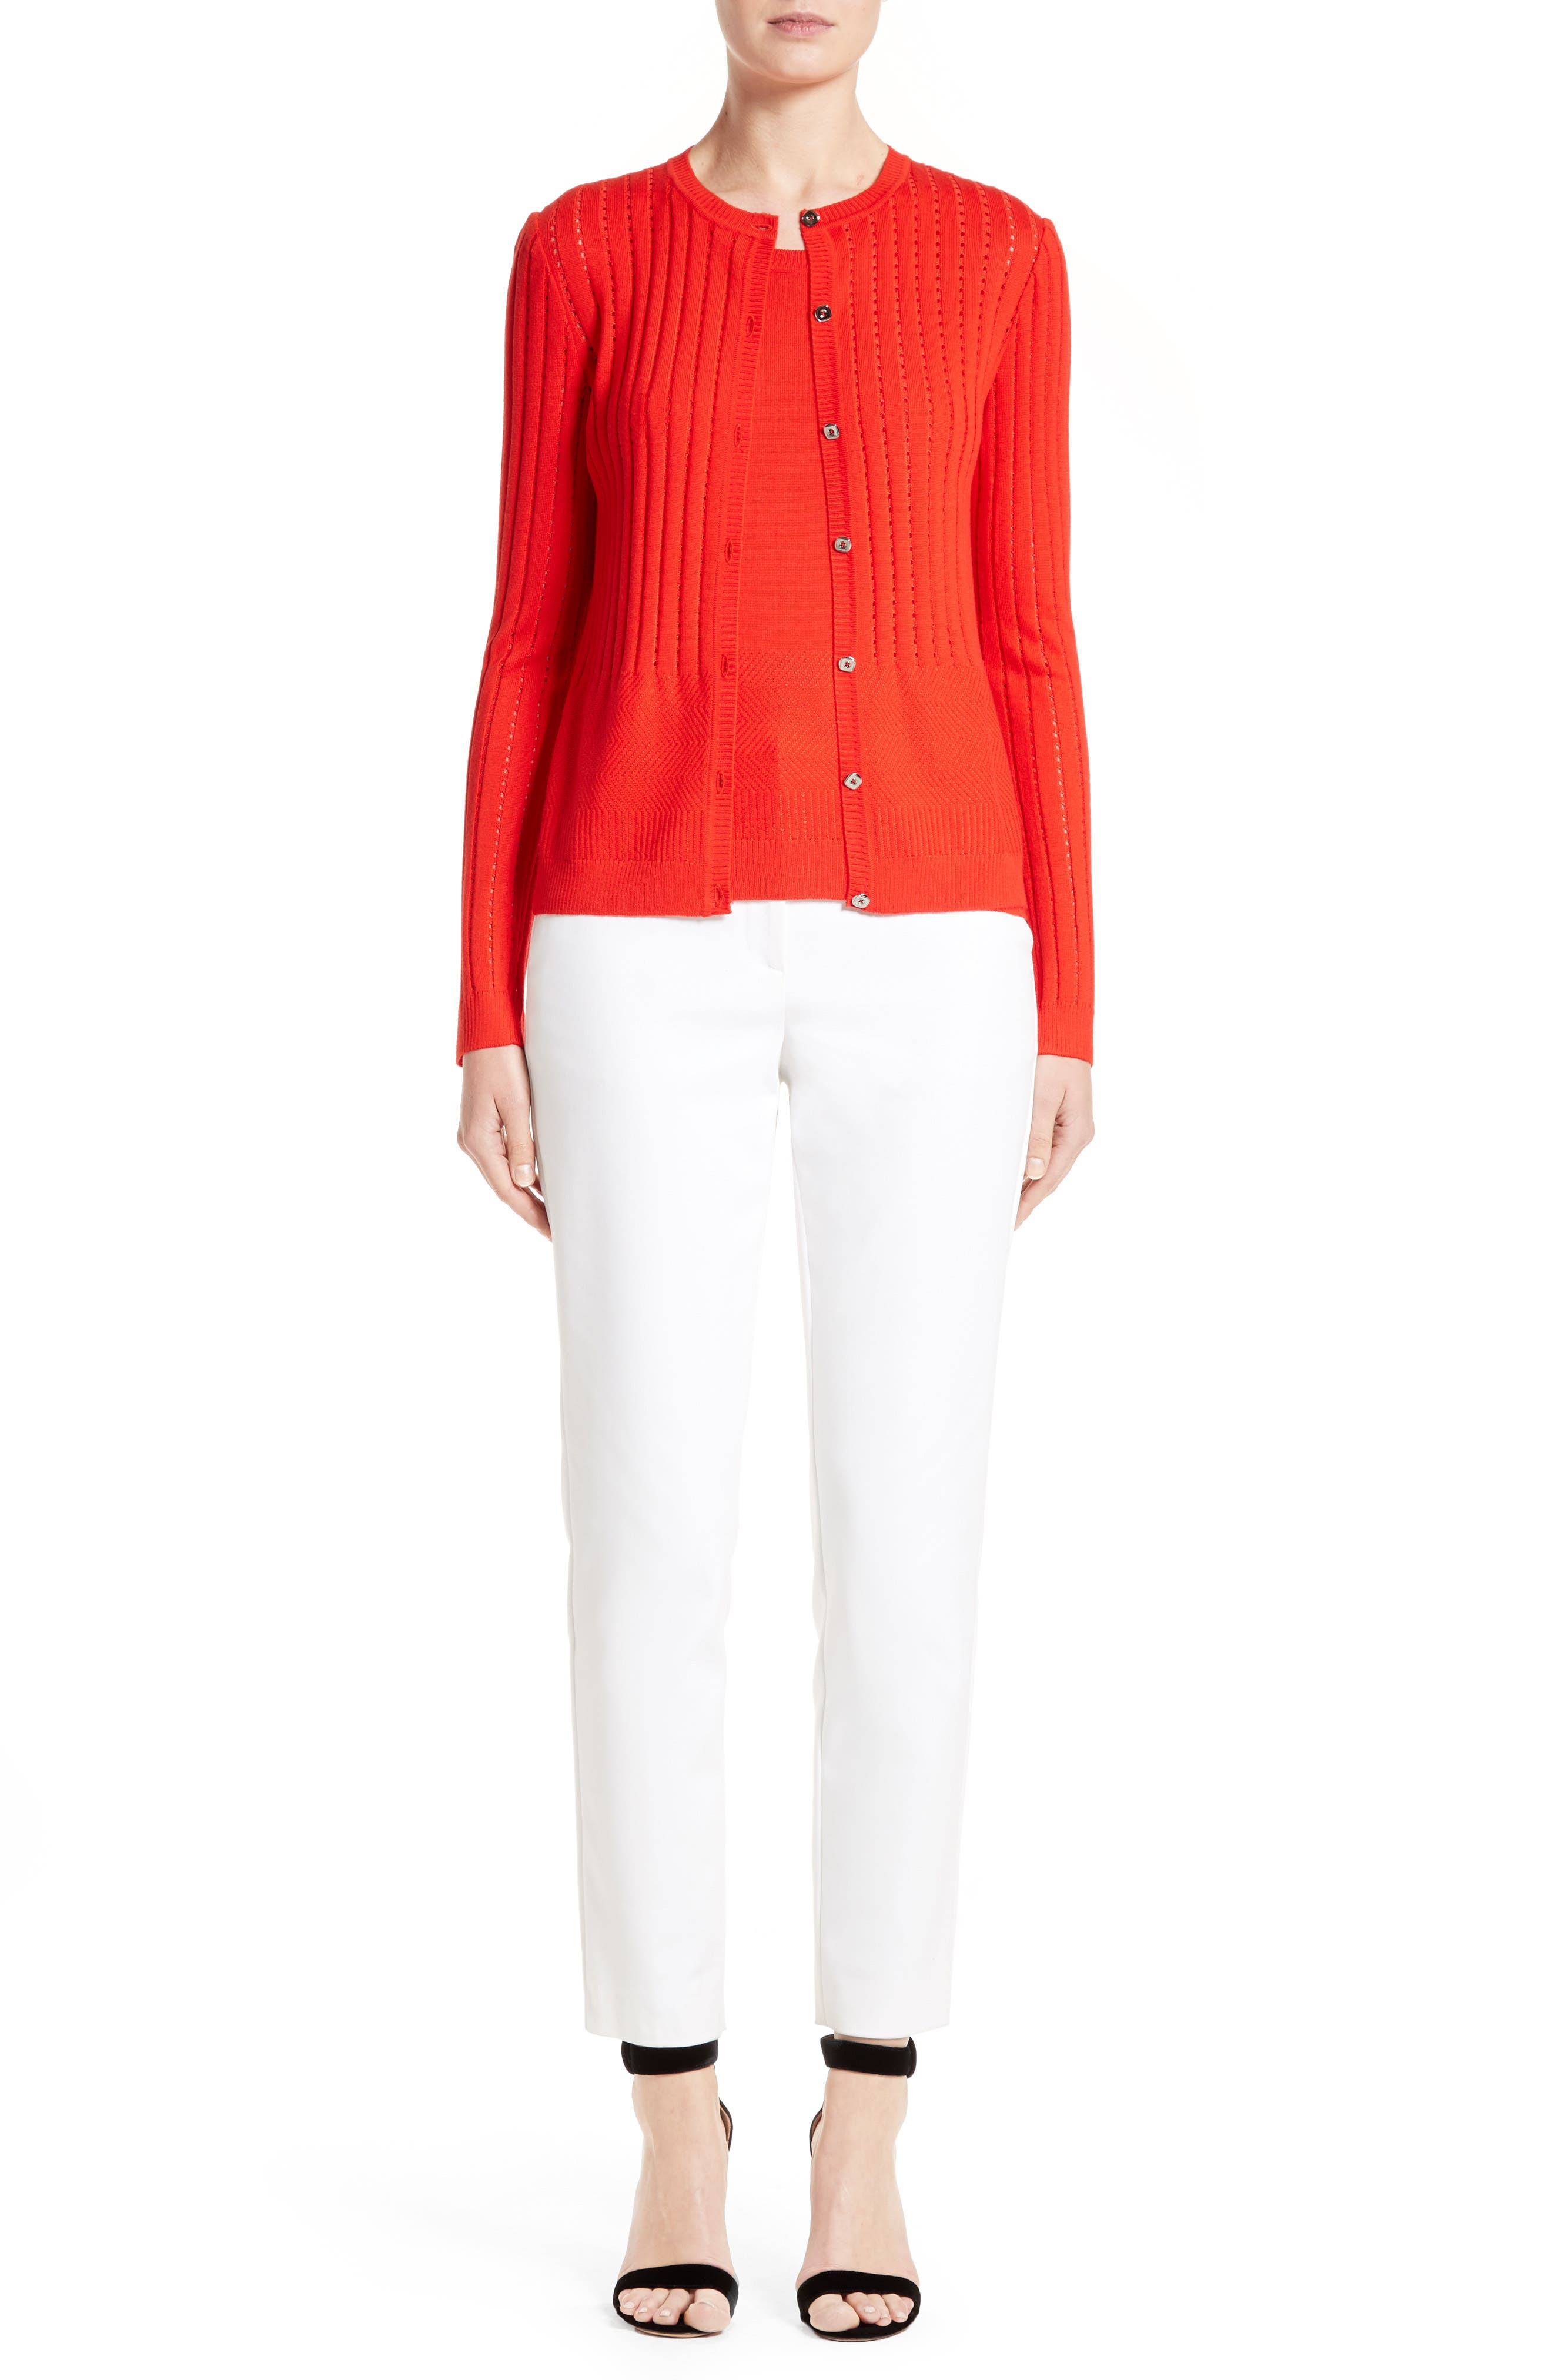 St. John Collection Cardigan, Shell & Pants Outfit with Accessories